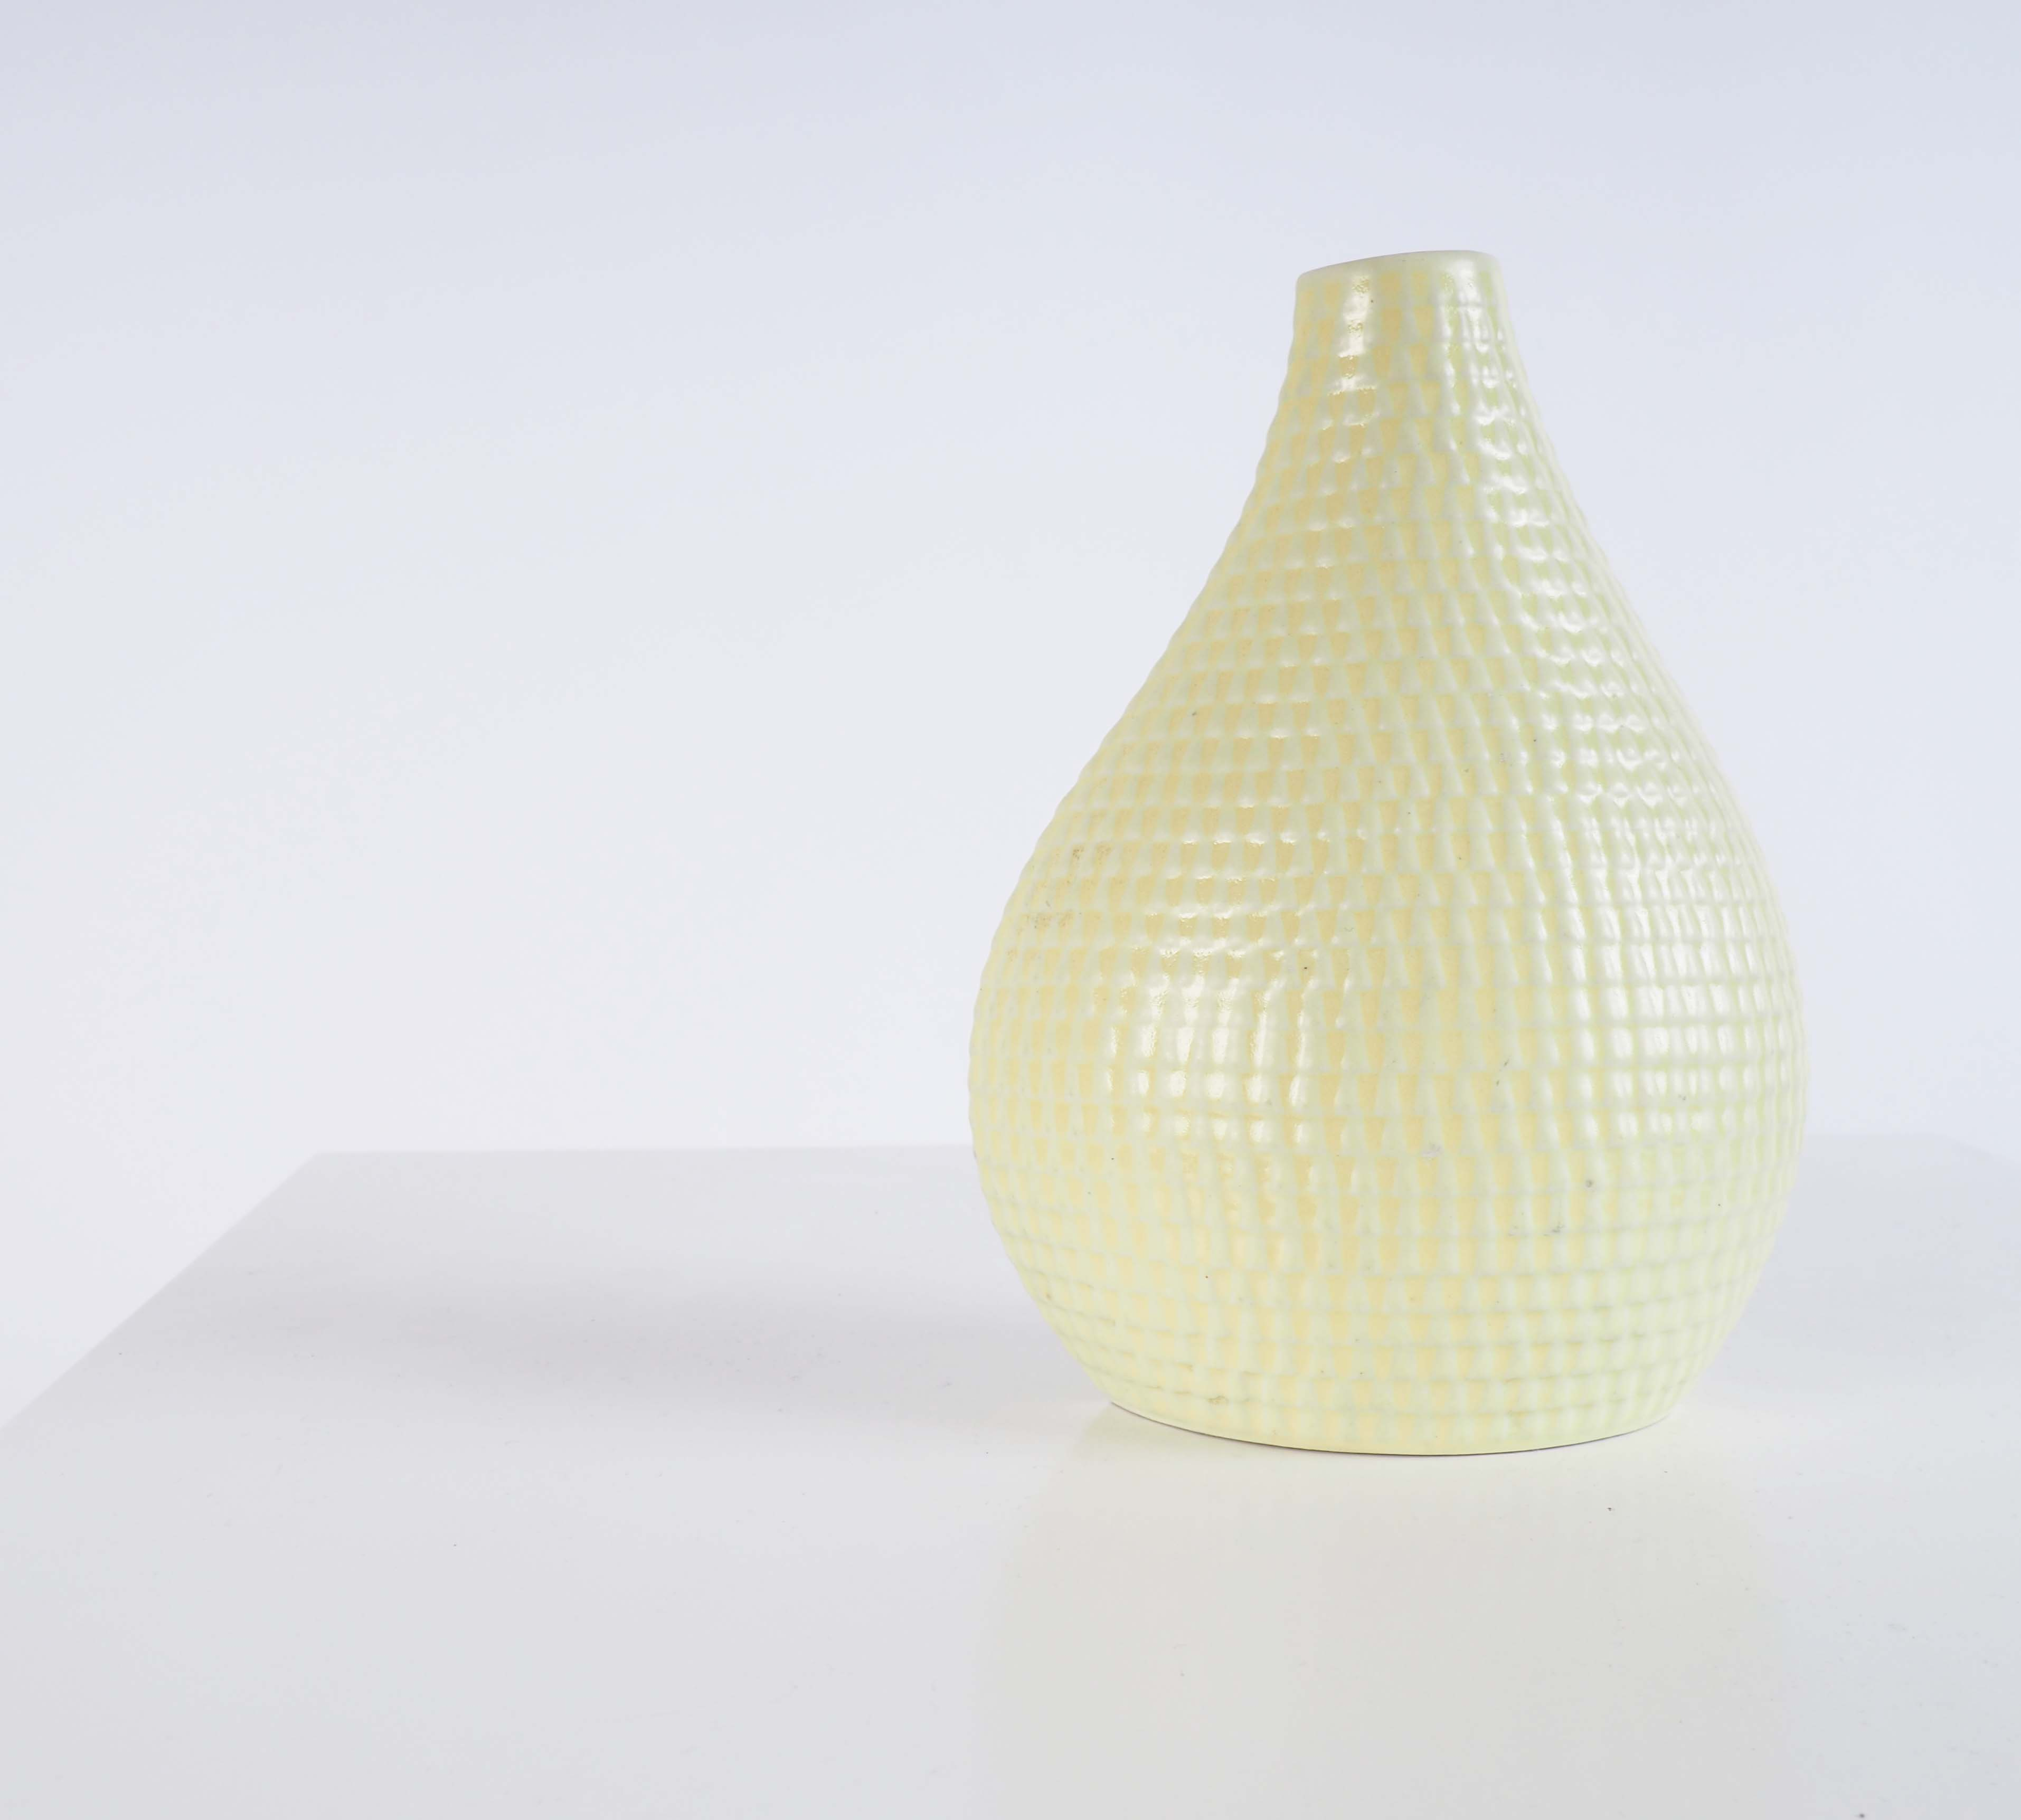 Yellow vase from the Reptile series by Stig Lindberg, Gustavsberg, Sweden